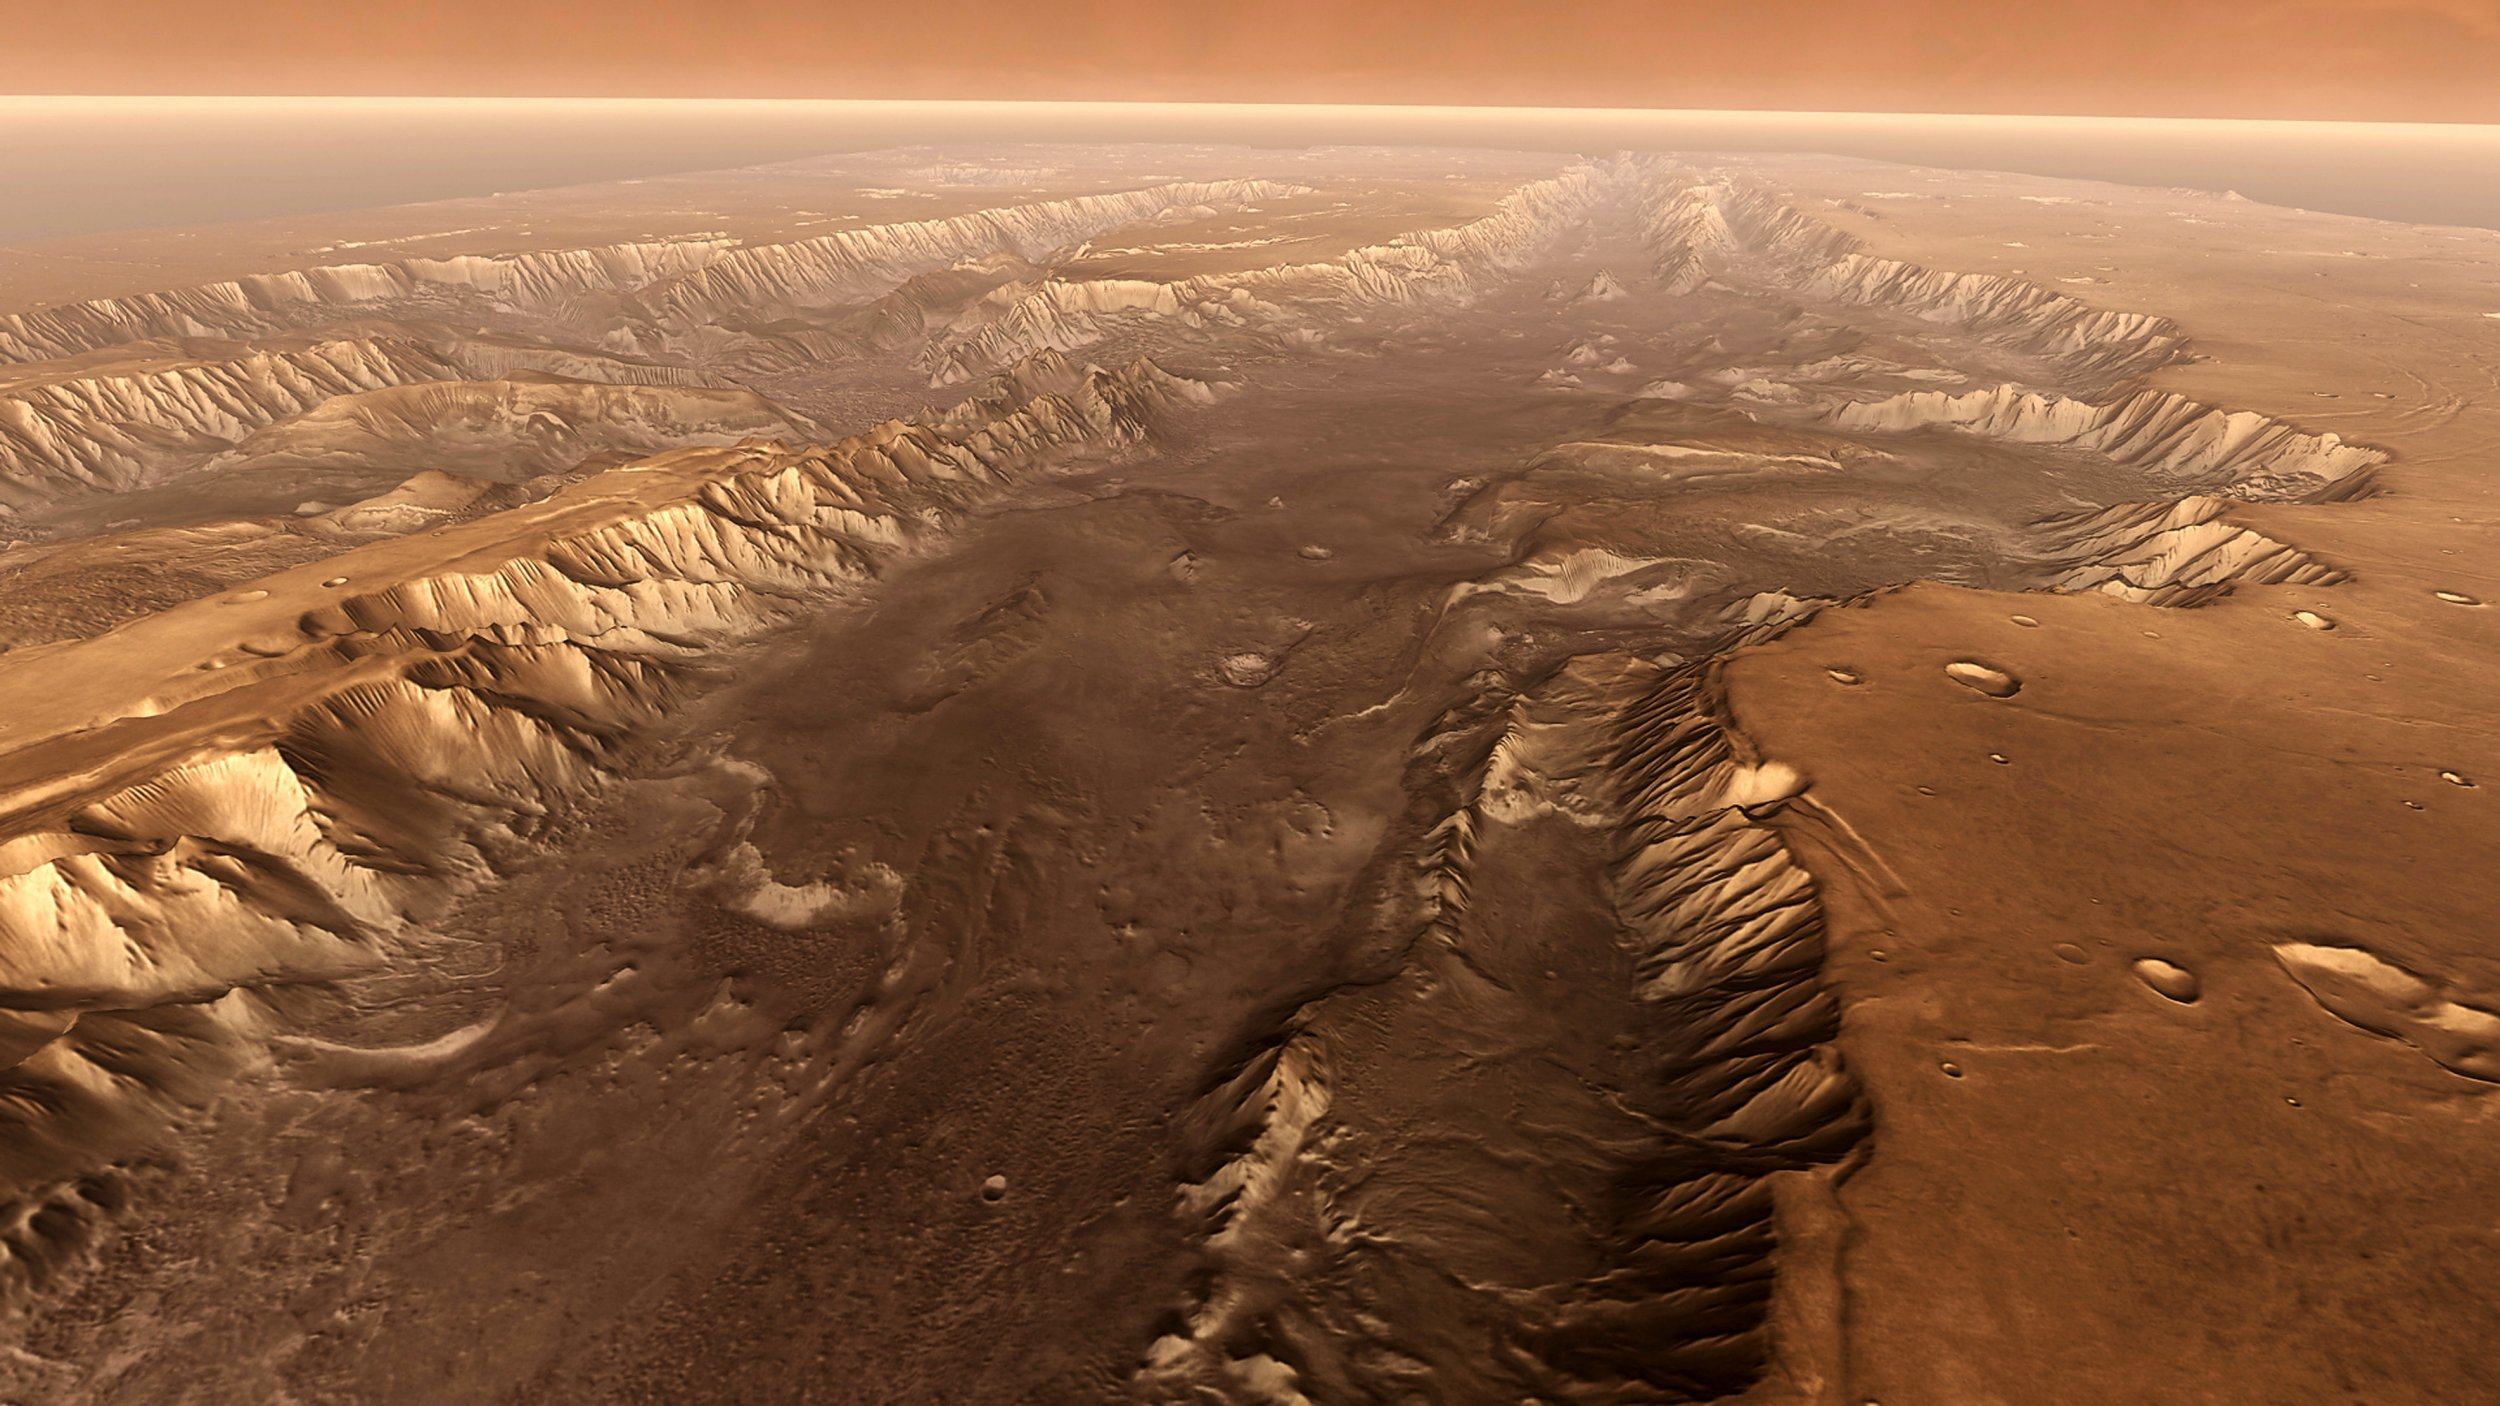 Valles Marineris, Mars, 3D image based on satellite data. Perspective view of Melas Chasma, one of the main canyons forming part of Valles Marineris, the largest canyon system on Mars. The canyon system is thought to have been formed by a combination of tectonic activity and water erosion. The canyon walls are many kilometres high, and the canyon seen here is hundreds of kilometres wide, dwarfing similar canyons on Earth. This image was generated using infrared data from the Mars Odyssey spacecrafts Thermal Emission Imaging System, and topographical data from the Mars Global Surveyor spacecrafts Mars Orbiter Laser Altimeter, both of which are in orbit around Mars.